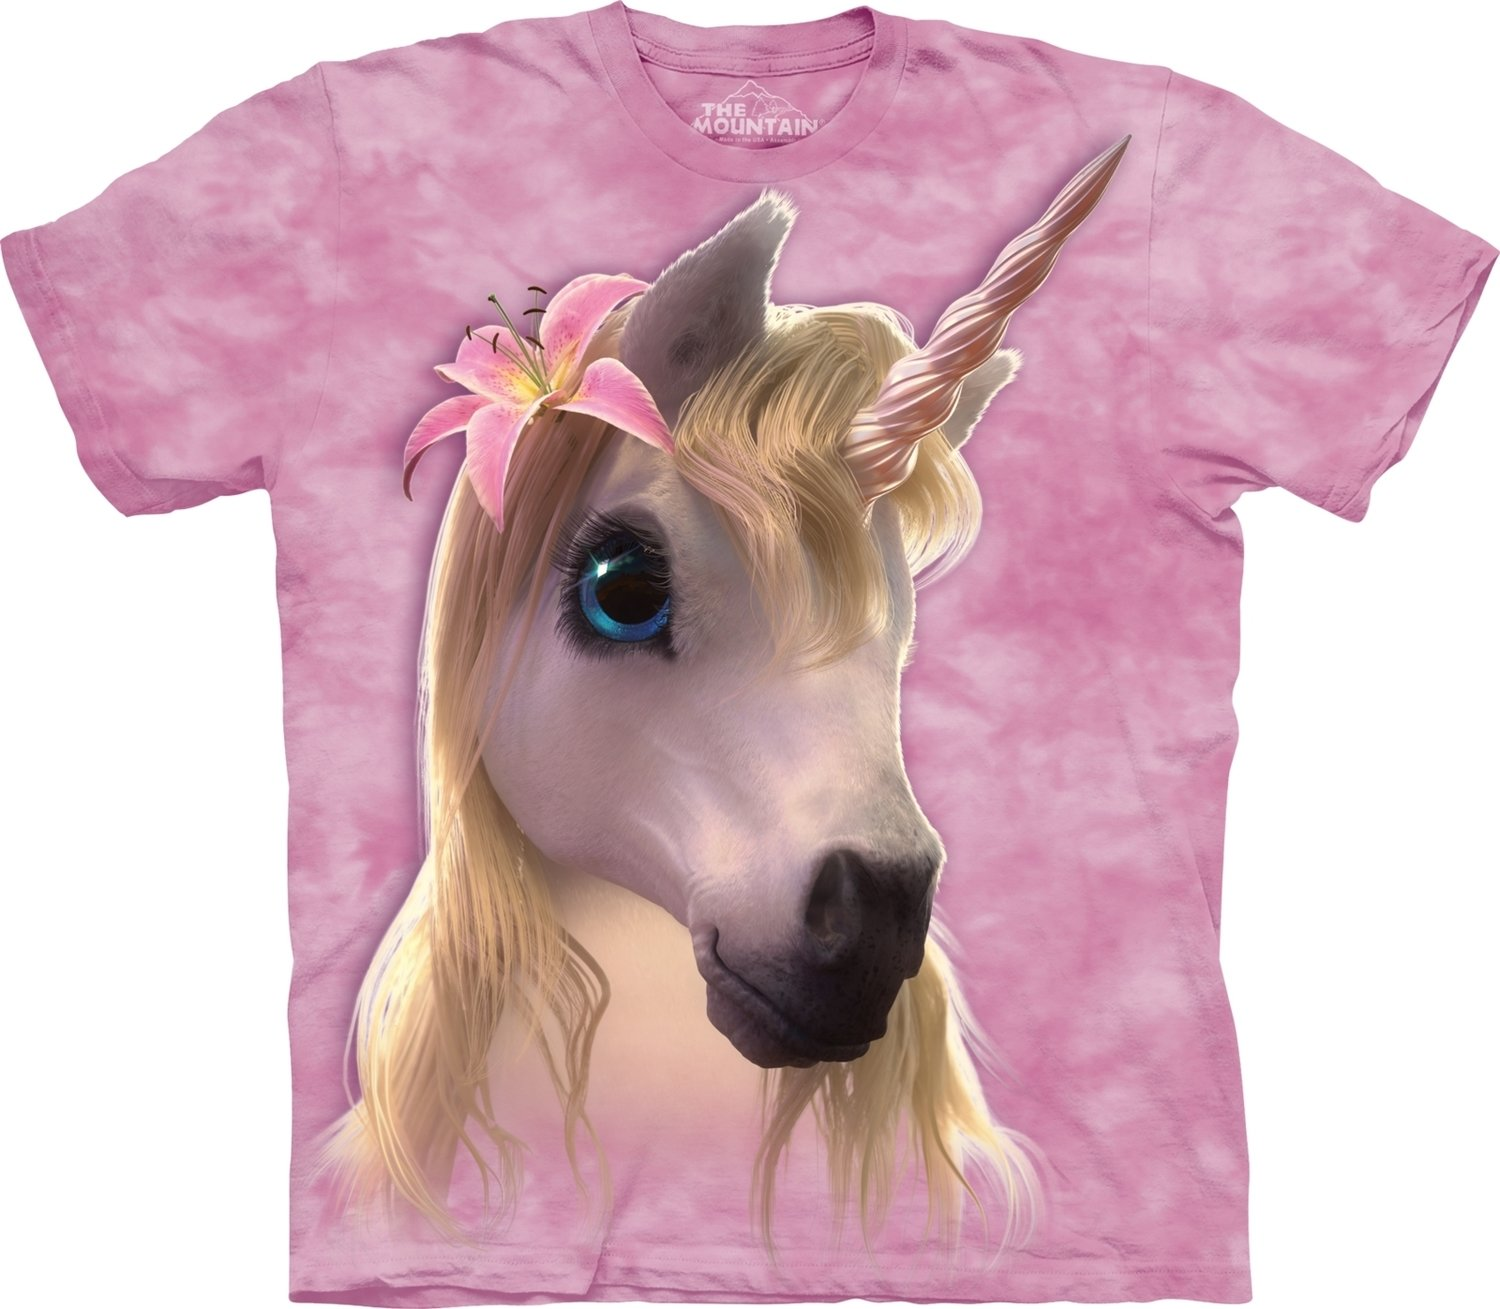 T-Shirt Cutie Pie Unicorn Kids